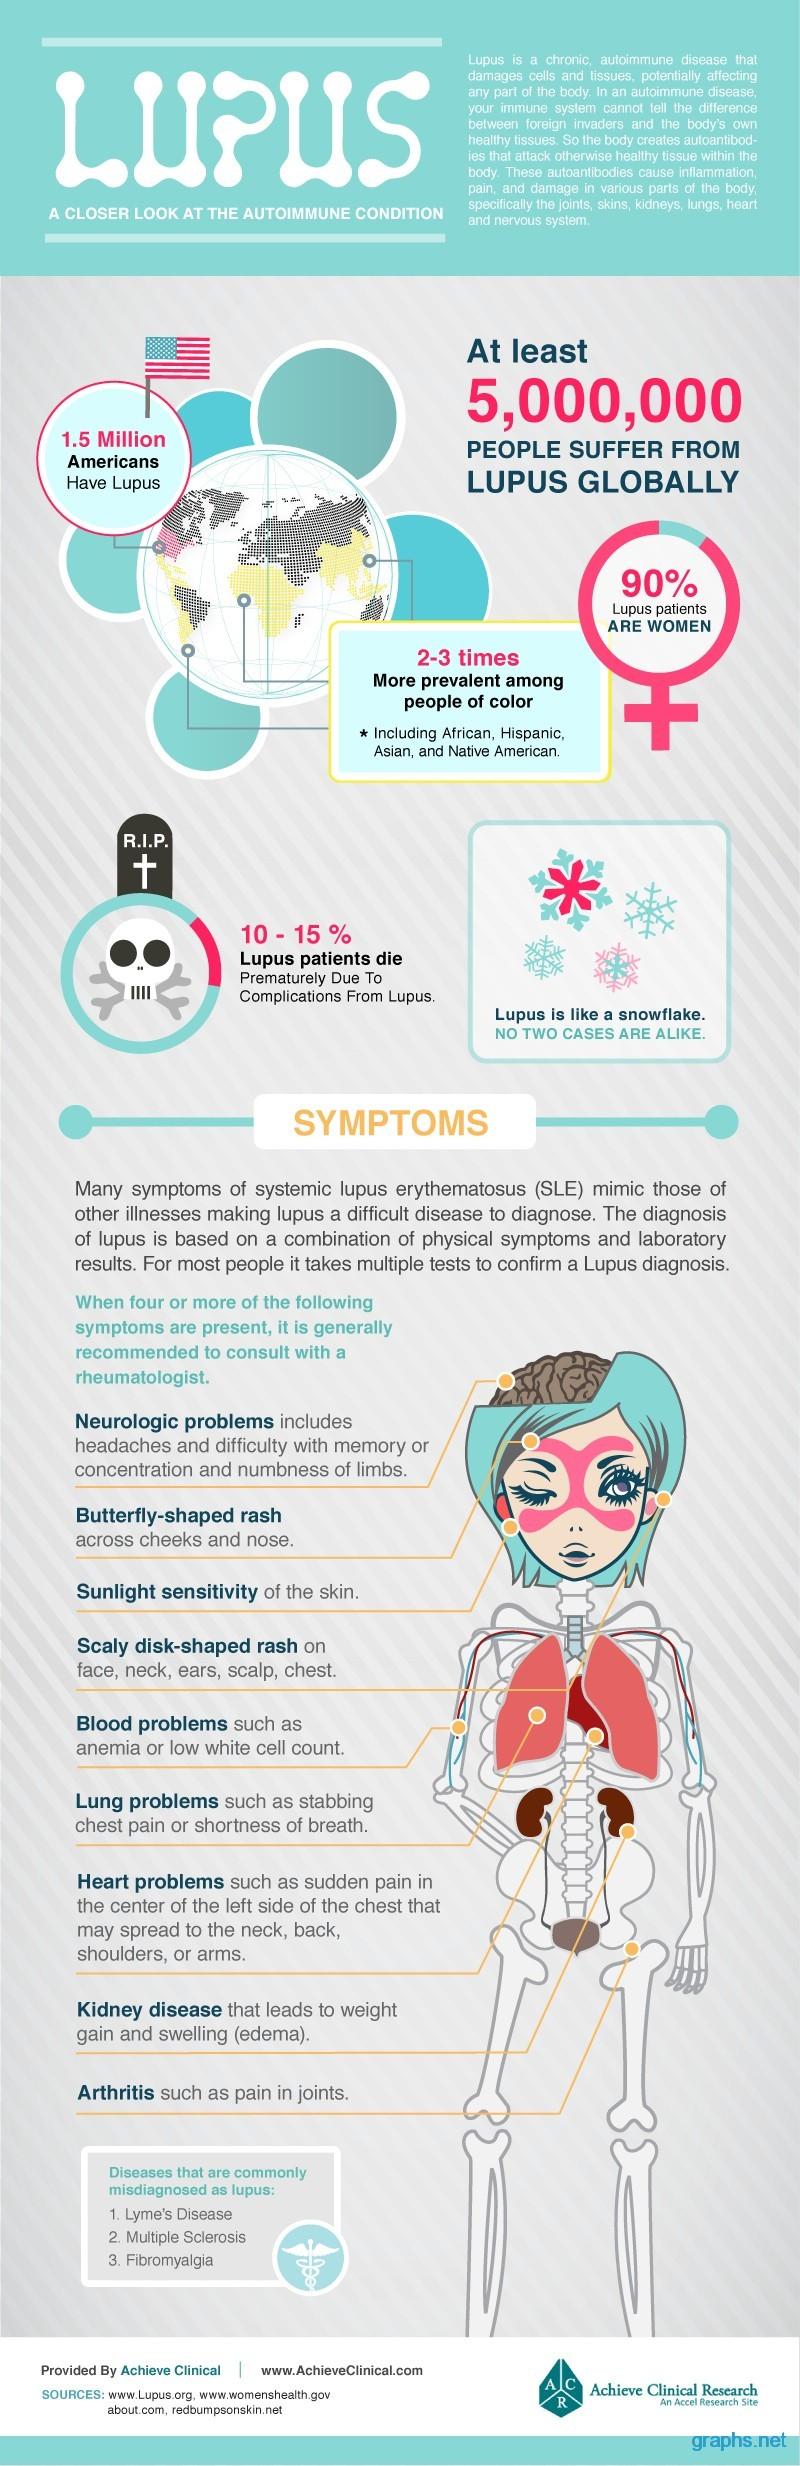 lupus signs and symptoms and treatment